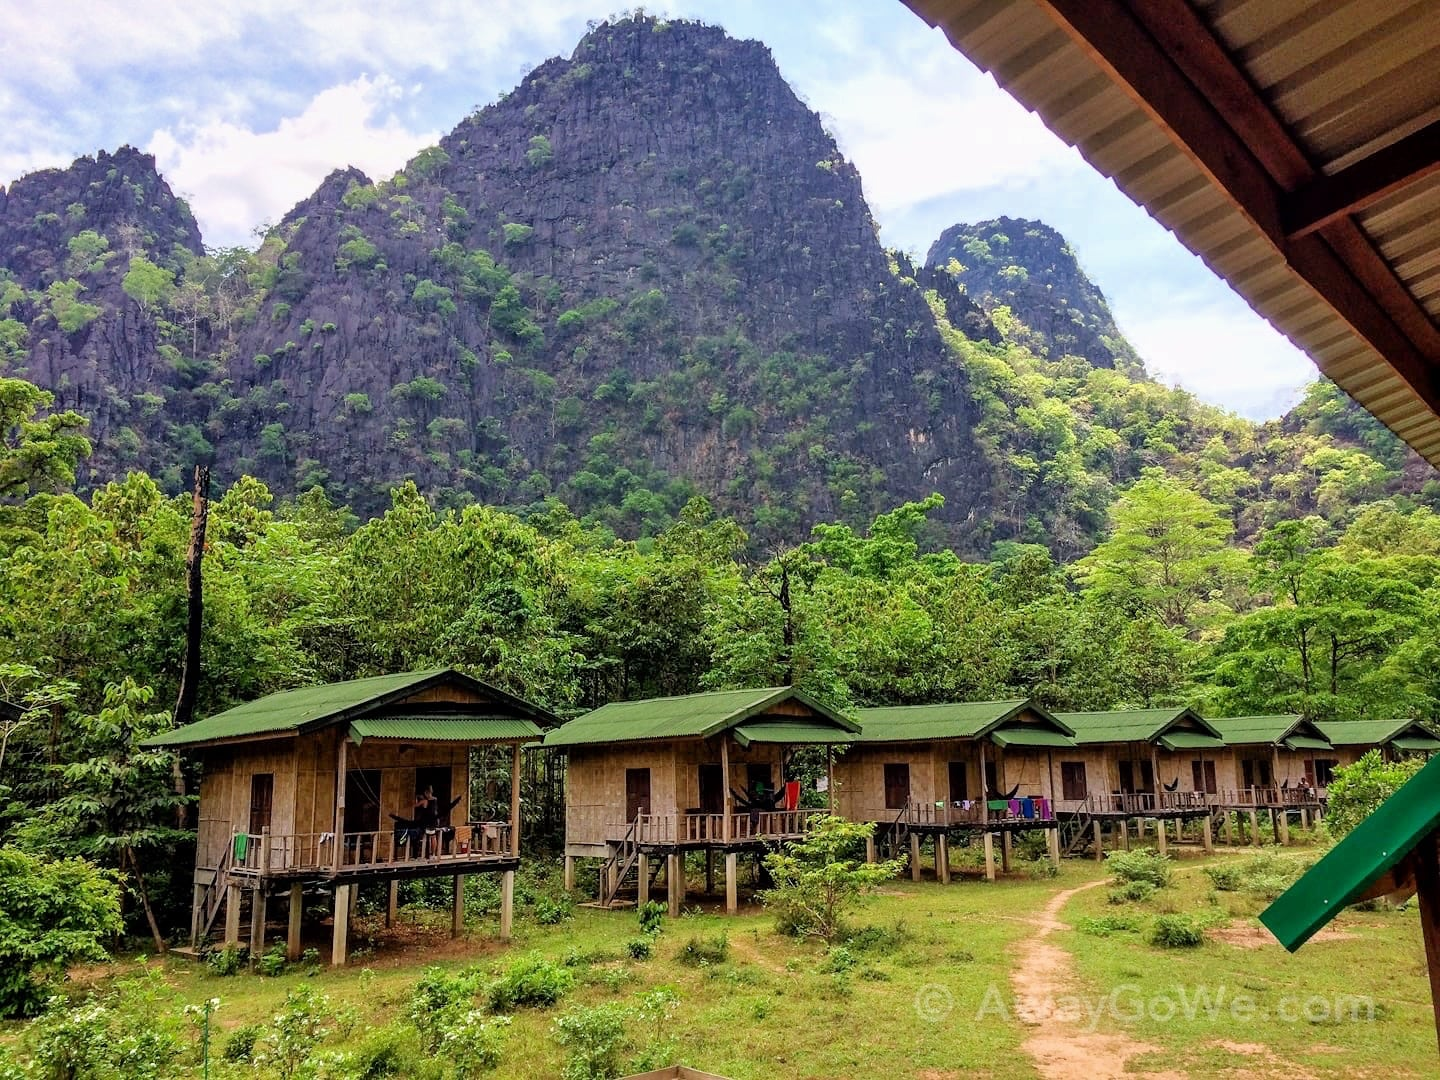 rock climbing lodge in jungle